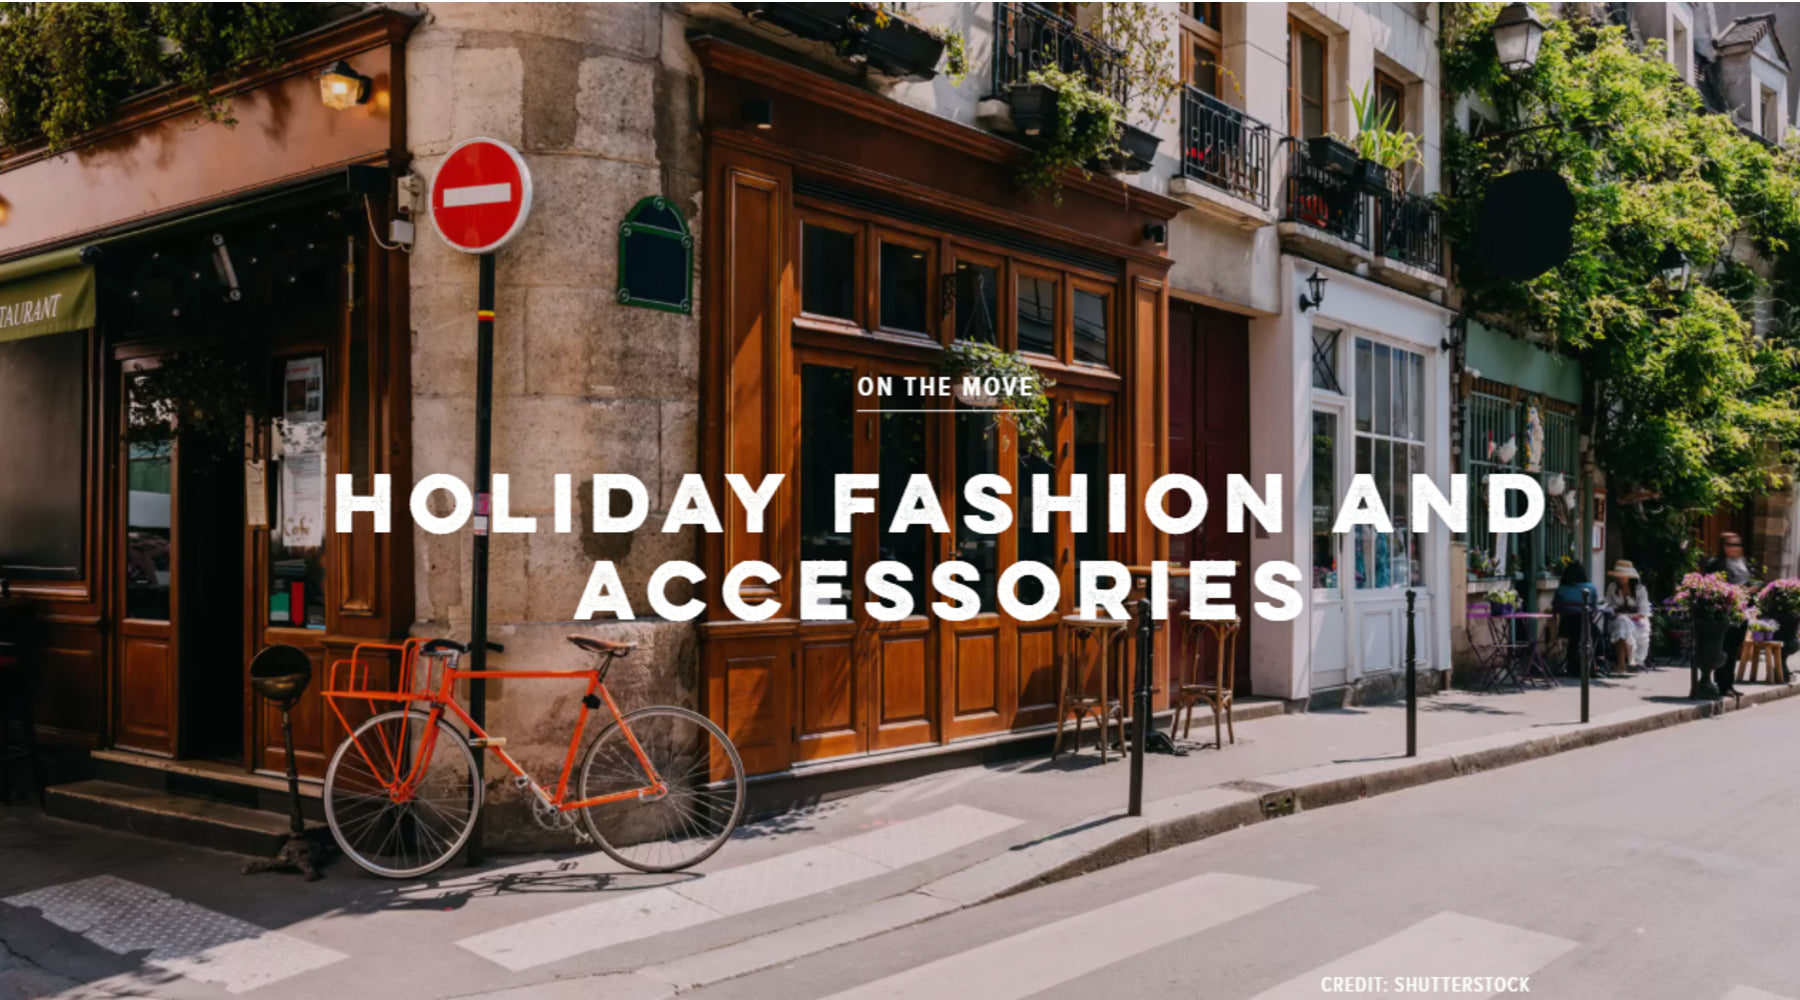 5th Nov | Holiday Fashion and Accessories (Condé Nast Traveller)